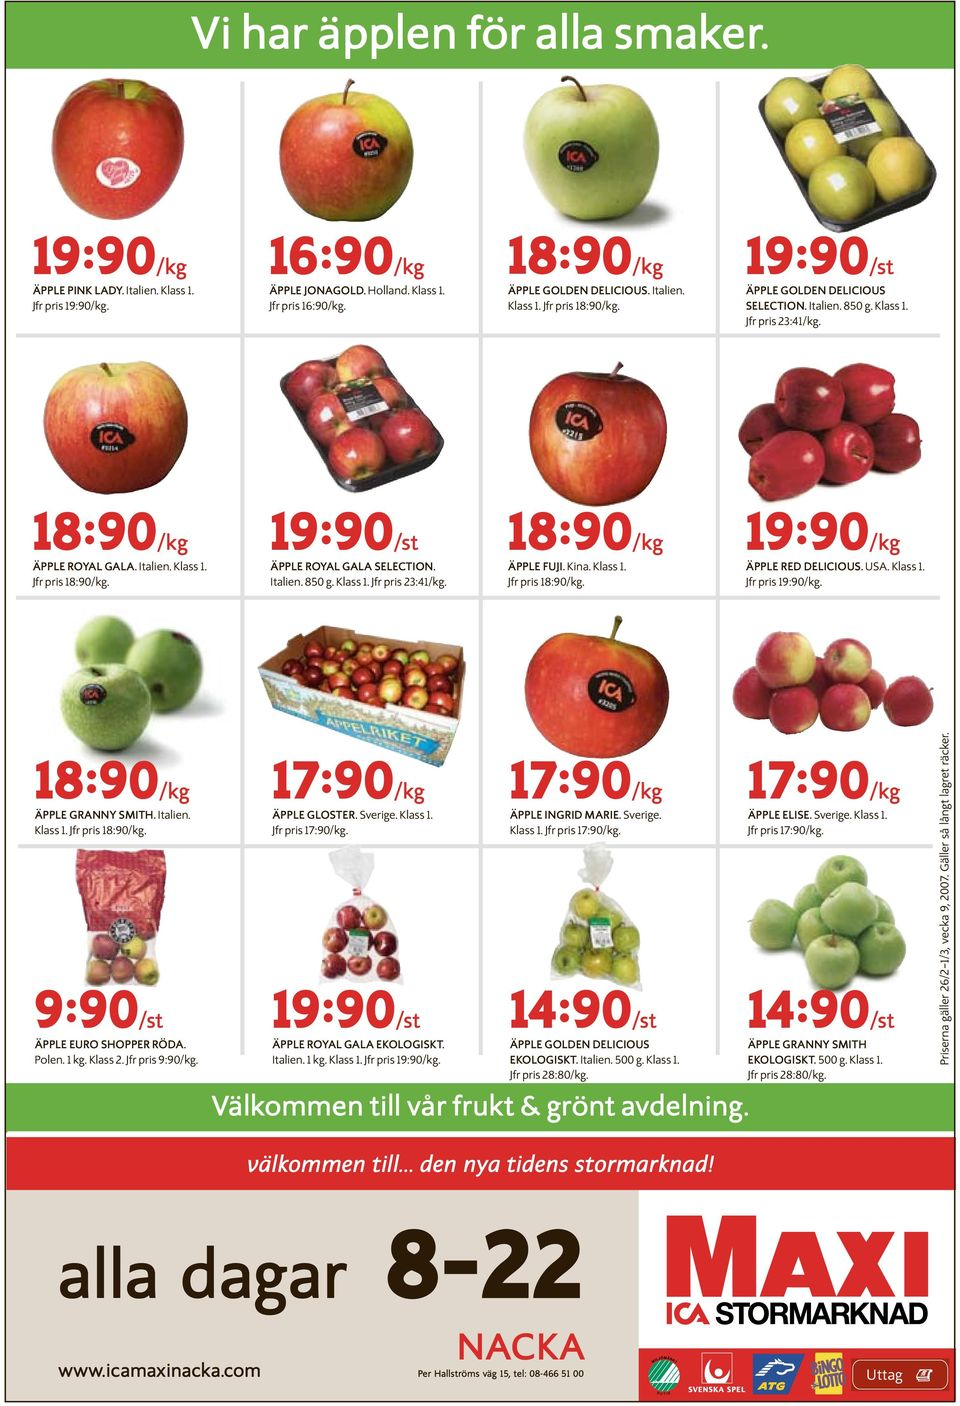 Kina. Klass 1. Jfr pris 18:90/kg. 19:90/kg ÄPPLE RED DELICIOUS. USA. Klass 1. Jfr pris 19:90/kg. 18:90/kg ÄPPLE GRANNY SMITH. Italien. Klass 1. Jfr pris 18:90/kg. 9:90/st ÄPPLE EURO SHOPPER RÖDA.